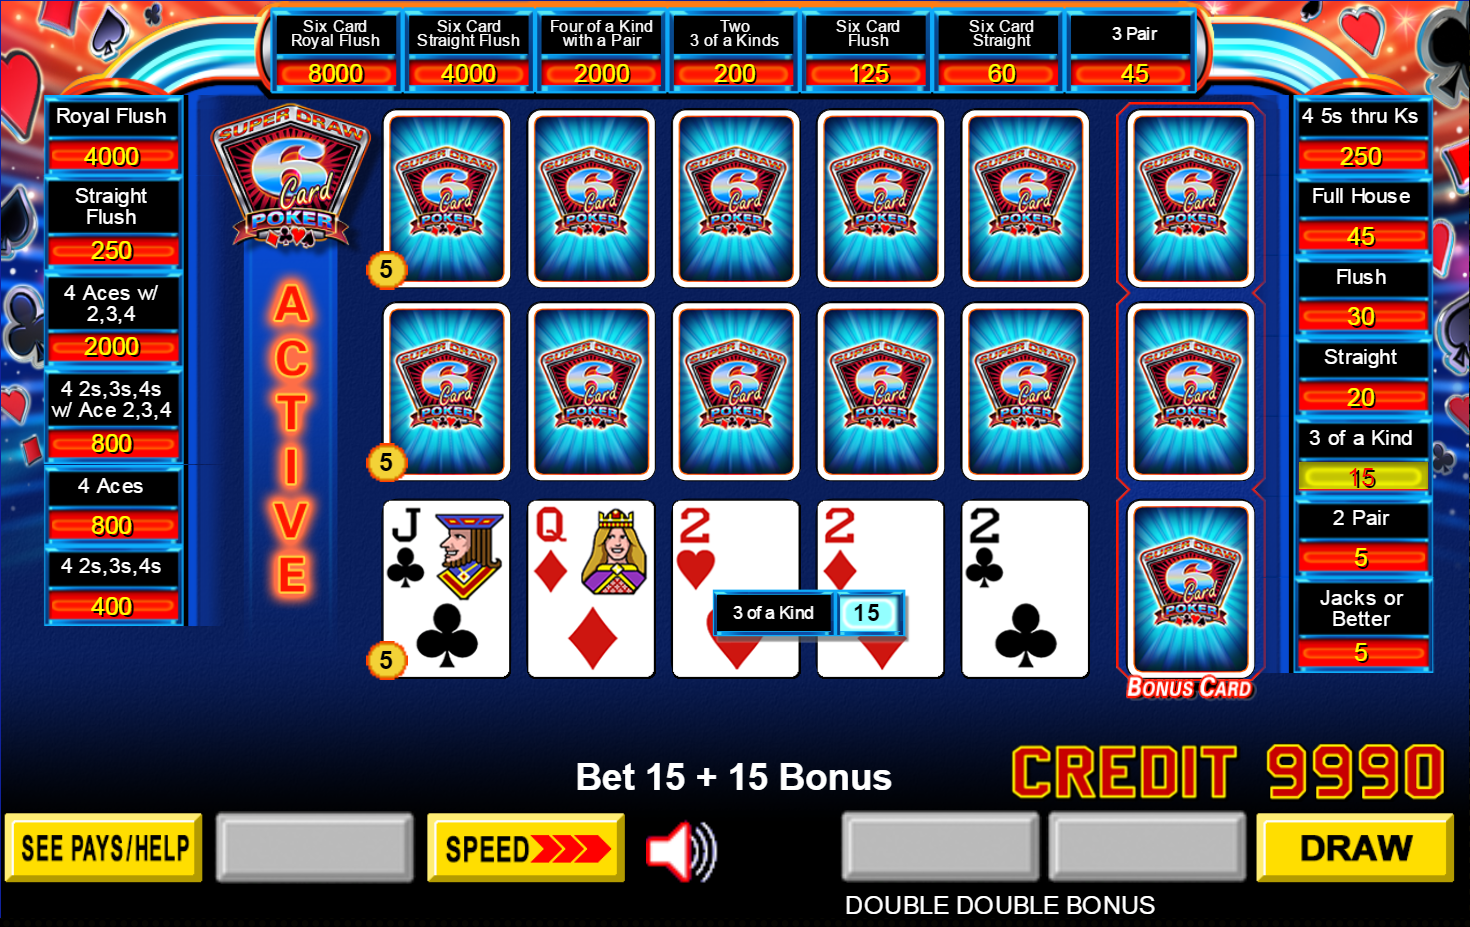 On The Draw The Top Hand Improved To A Full House Which Paid 45 Coins On The Middle Hand I Improved To Four Deuces Thanks To The 6th Card Which Paid 400